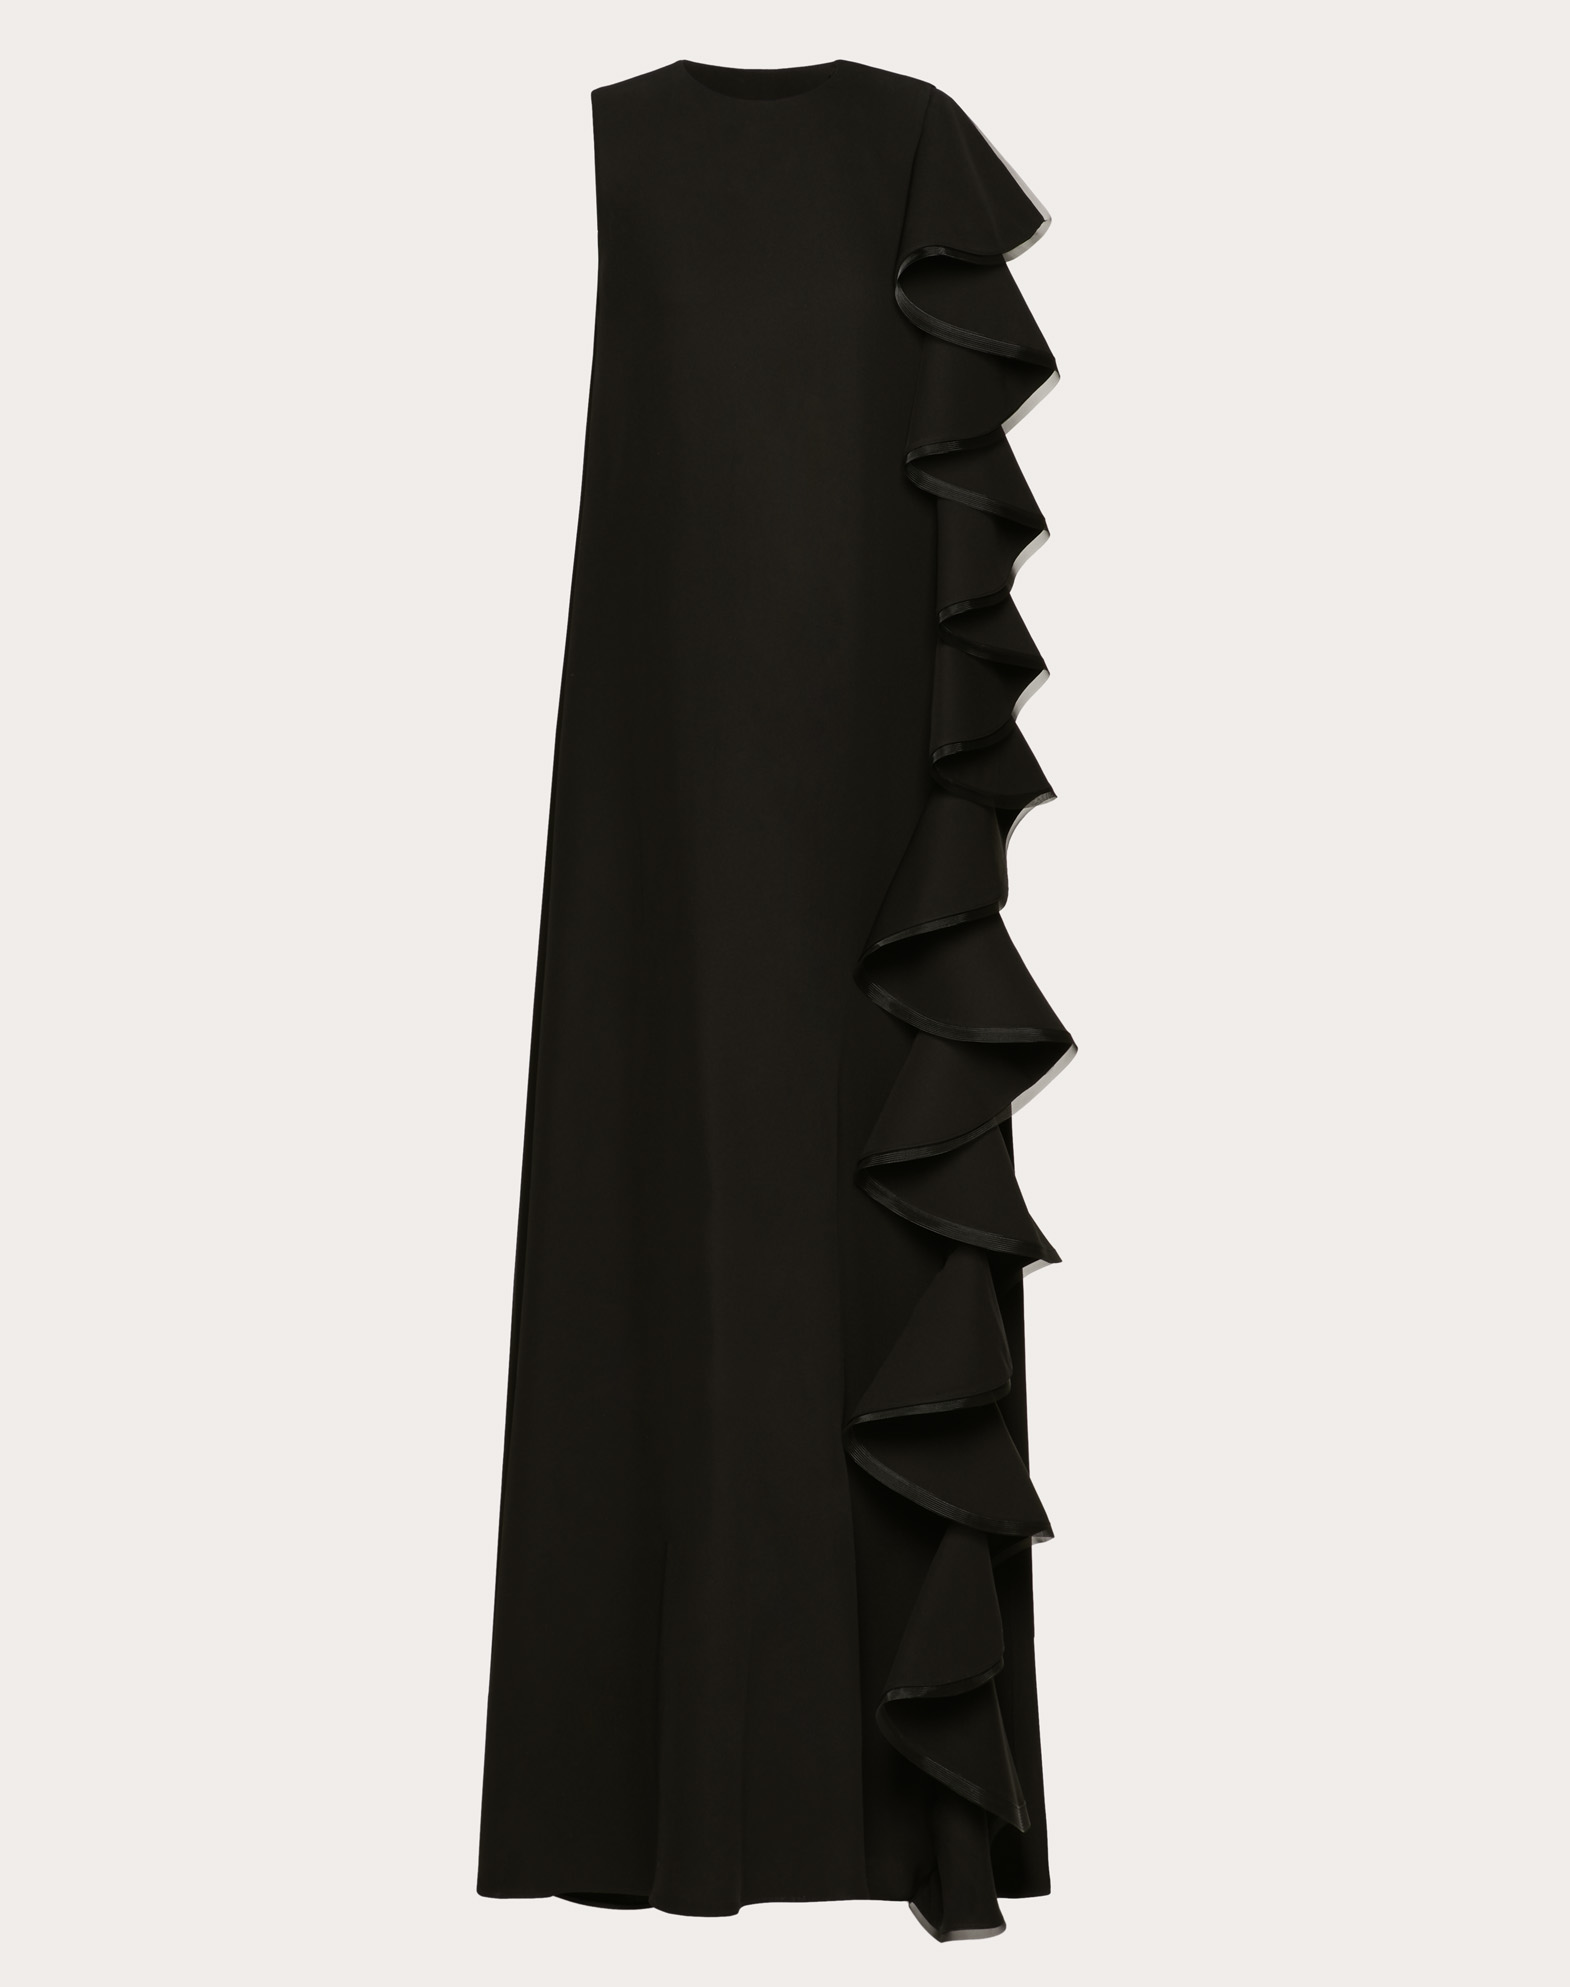 CADY COUTURE EVENING DRESS WITH RUFFLES